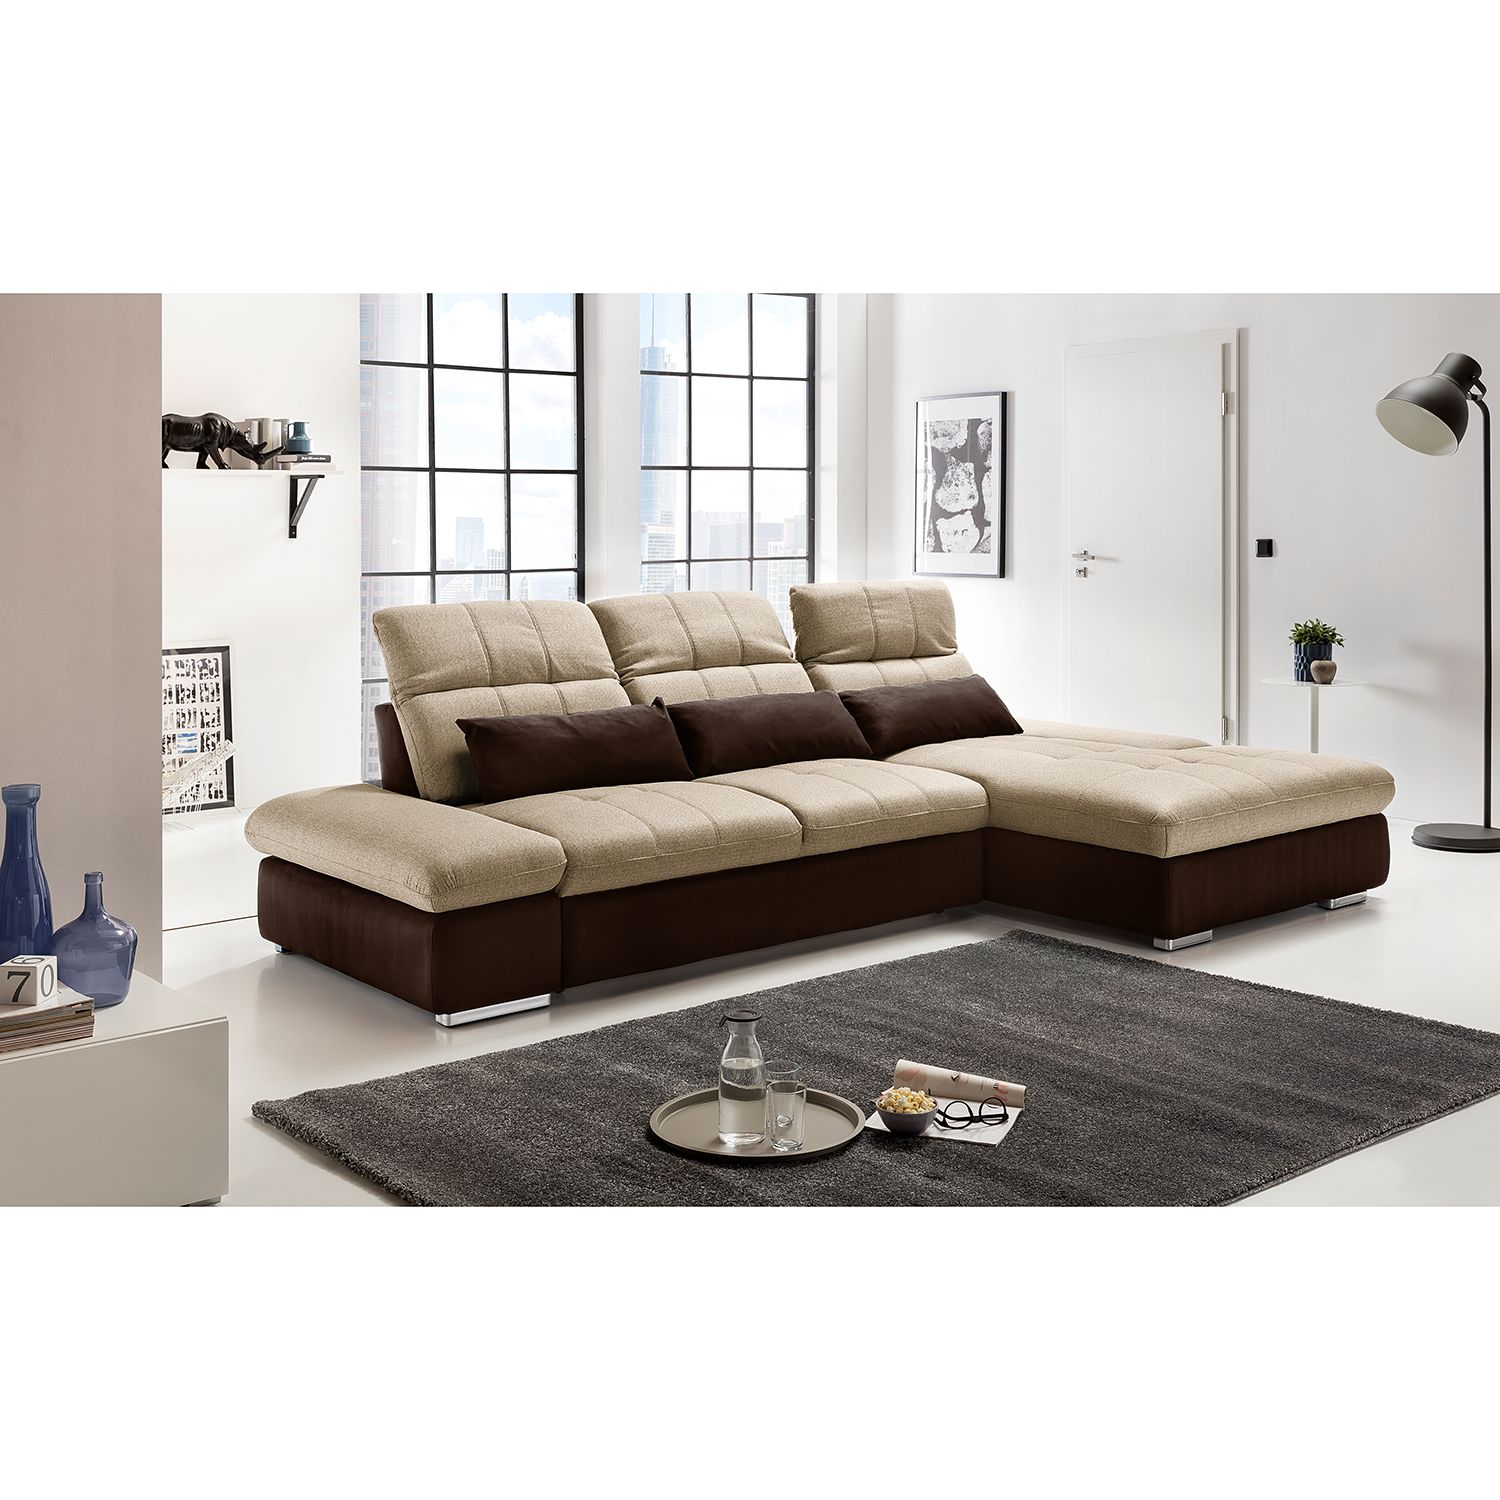 home24 Ecksofa Wonder Microfaser / Webstoff